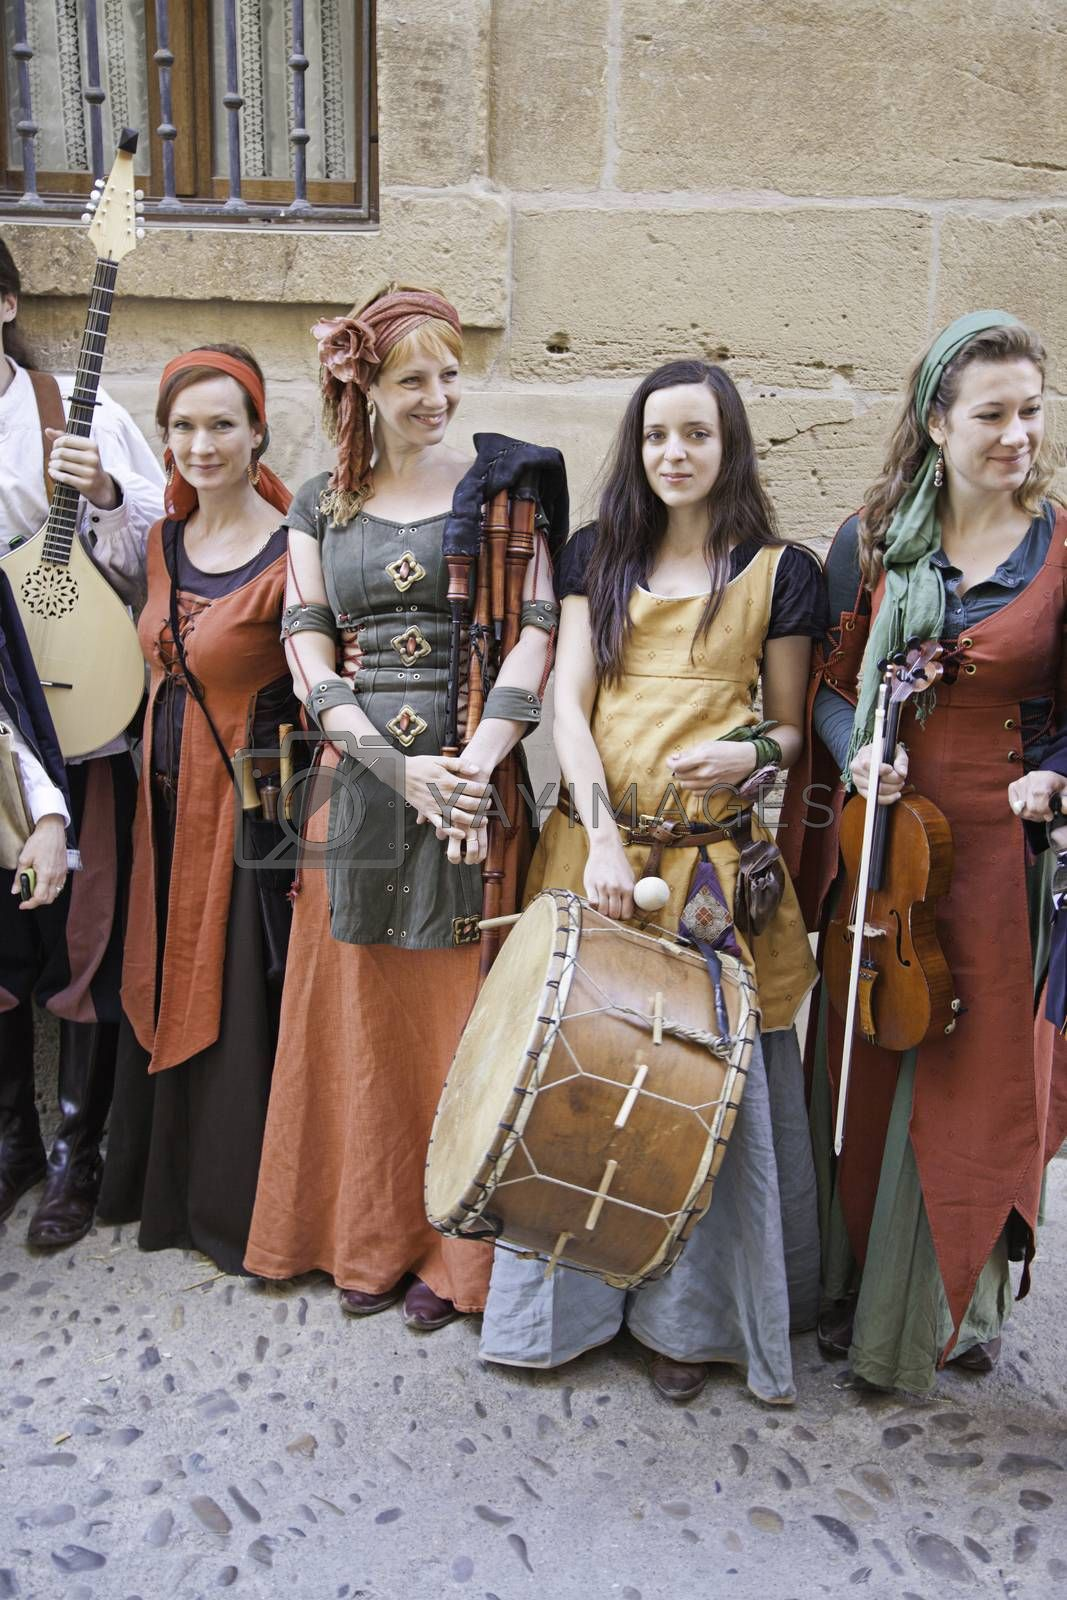 Group medieval musicians, detail of a group of beautiful women who play ancient music